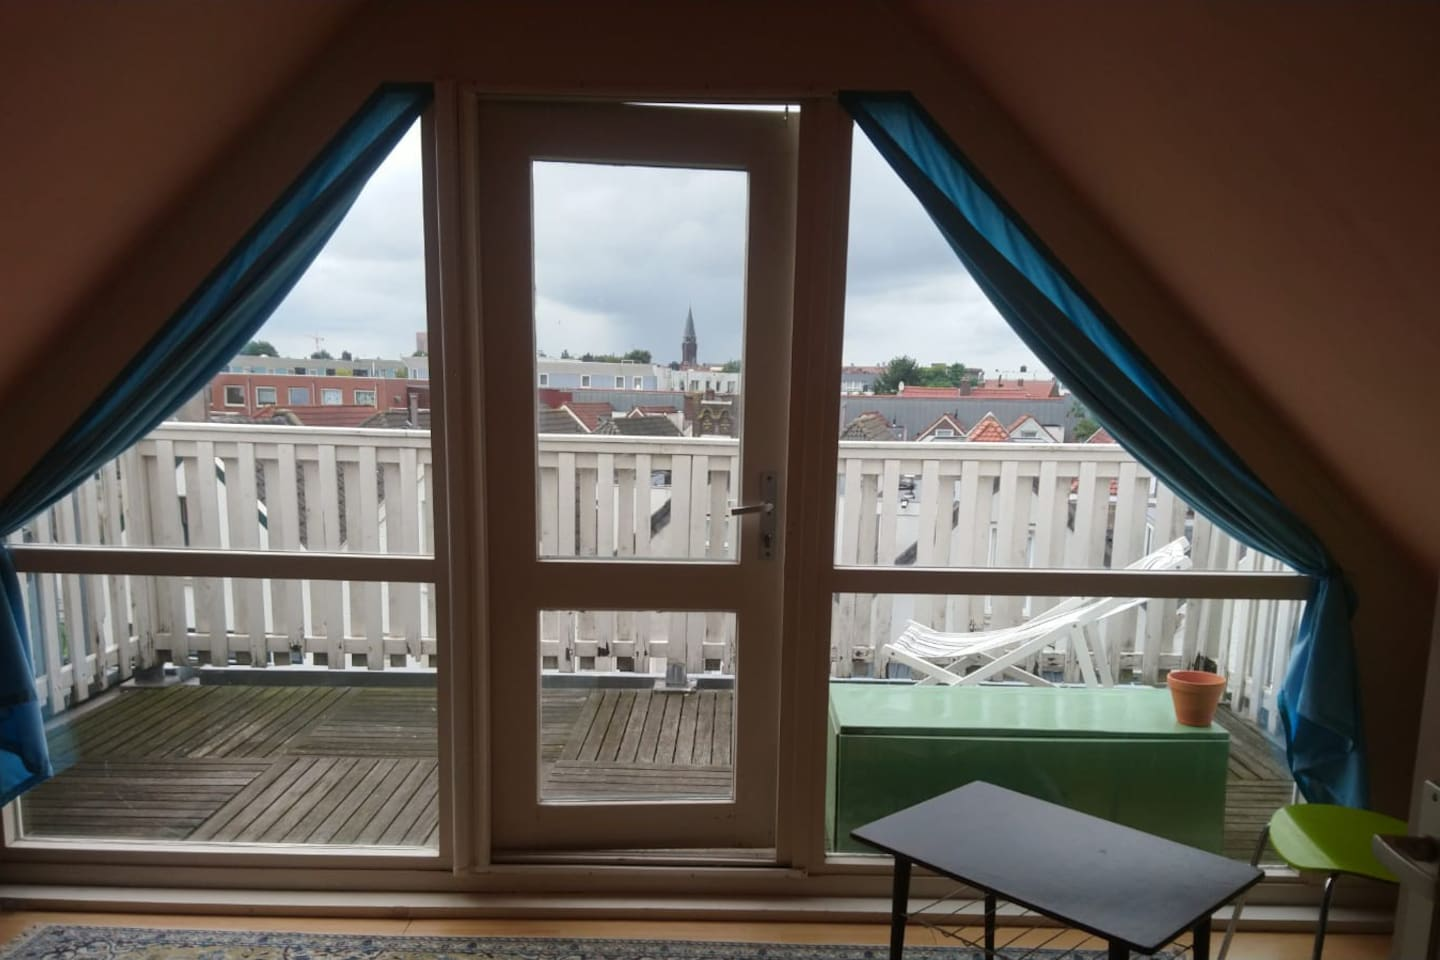 Room with a view, guests have their own balcony with a nice view of the city, from the unconventional side.